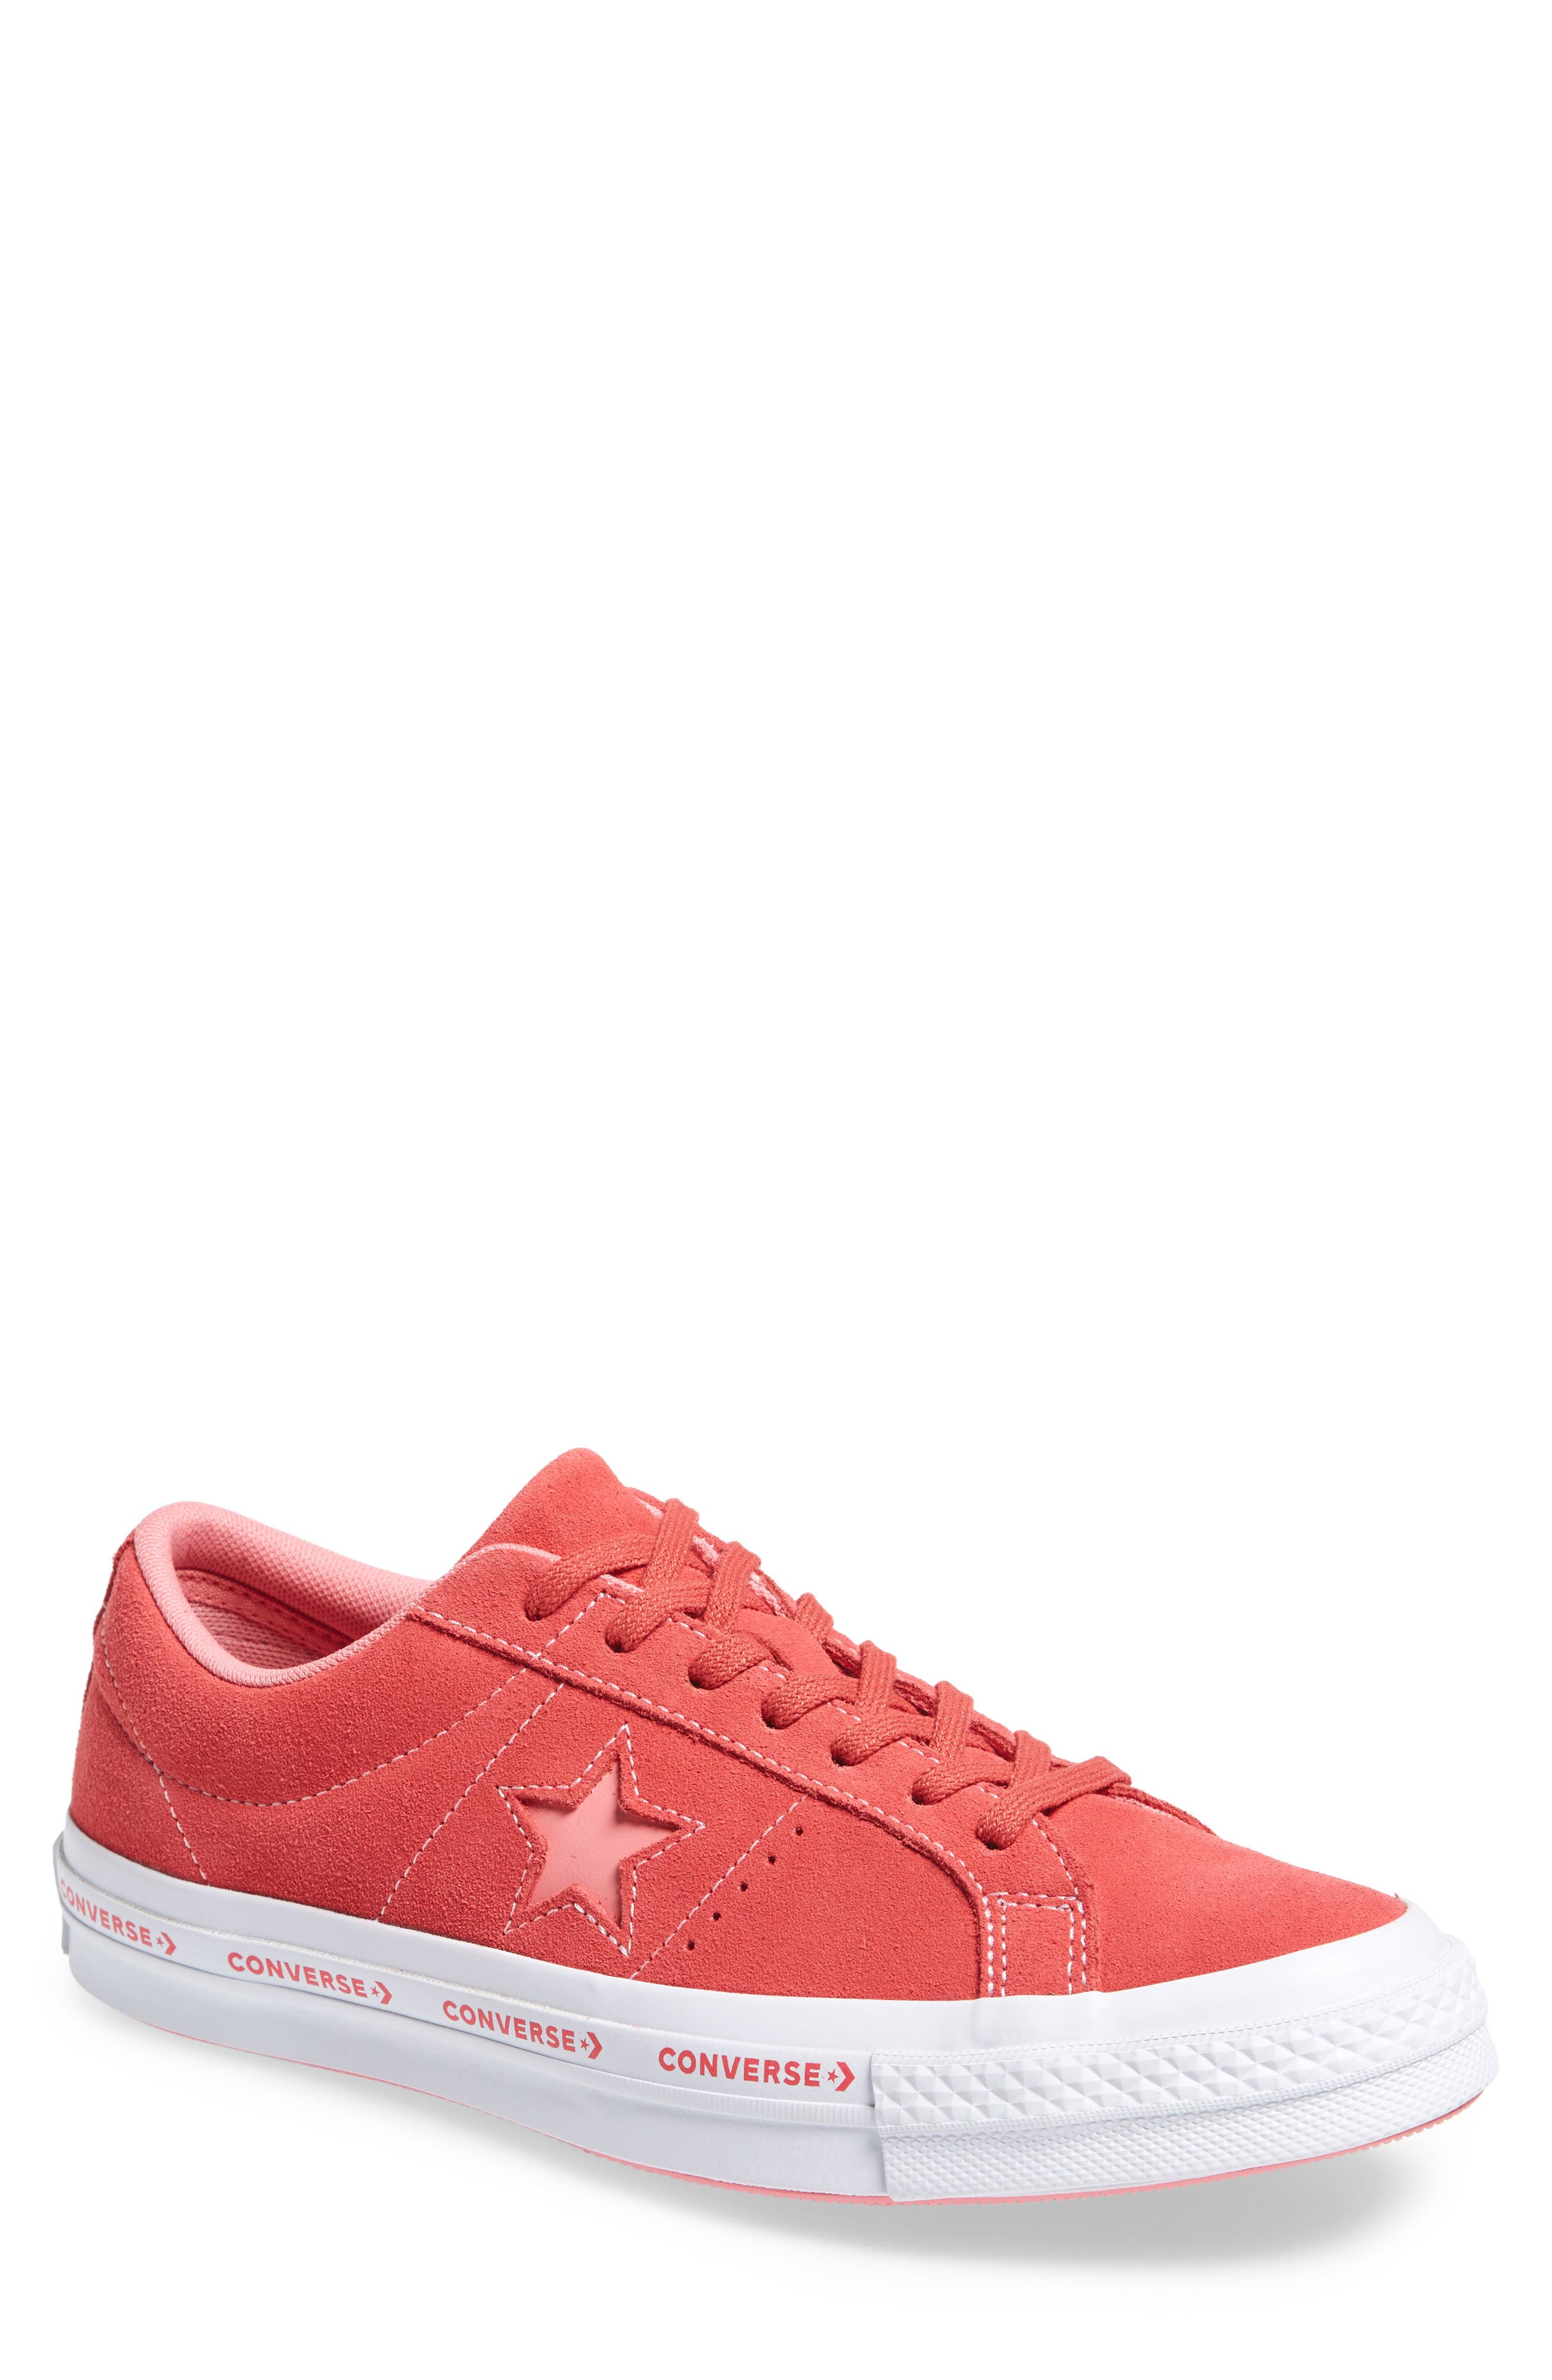 Chuck Taylor<sup>®</sup> One Star Pinstripe Sneaker,                         Main,                         color, Paradise Pink Suede